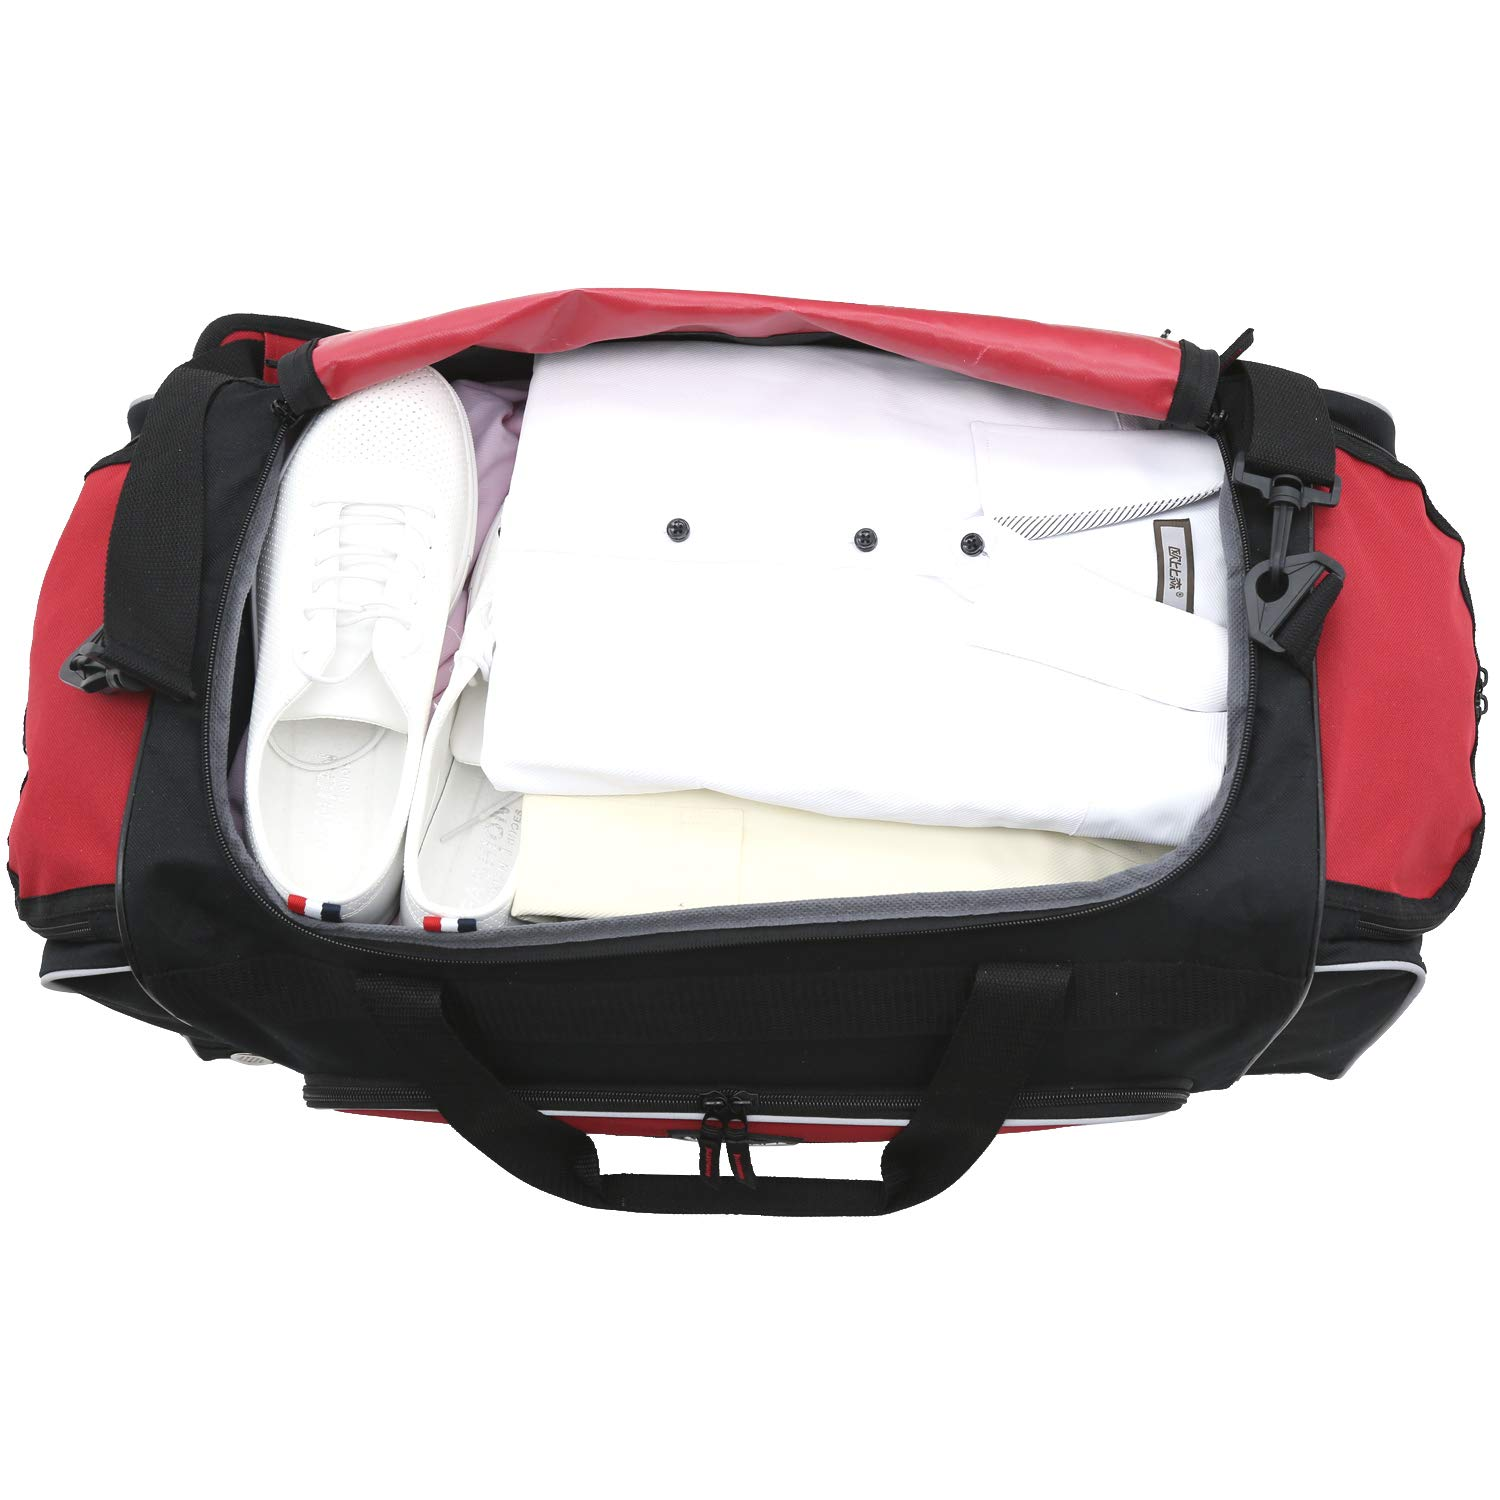 Travelers Club ADVENTURE Travel and Outdoor Duffle Bag